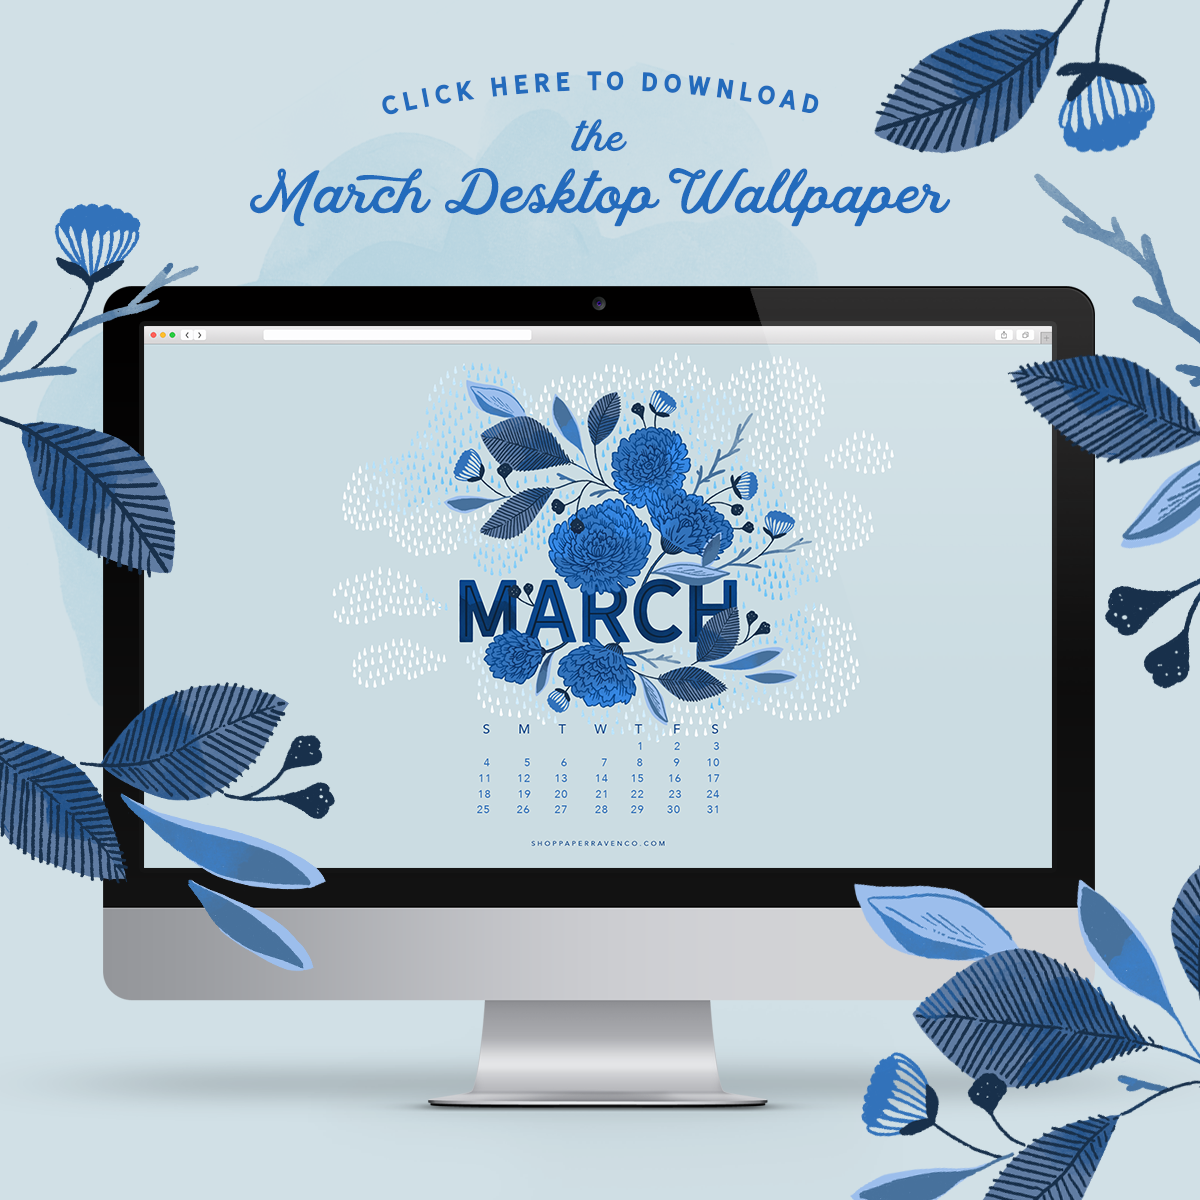 March Desktop Wallpaper by Paper Raven Co.